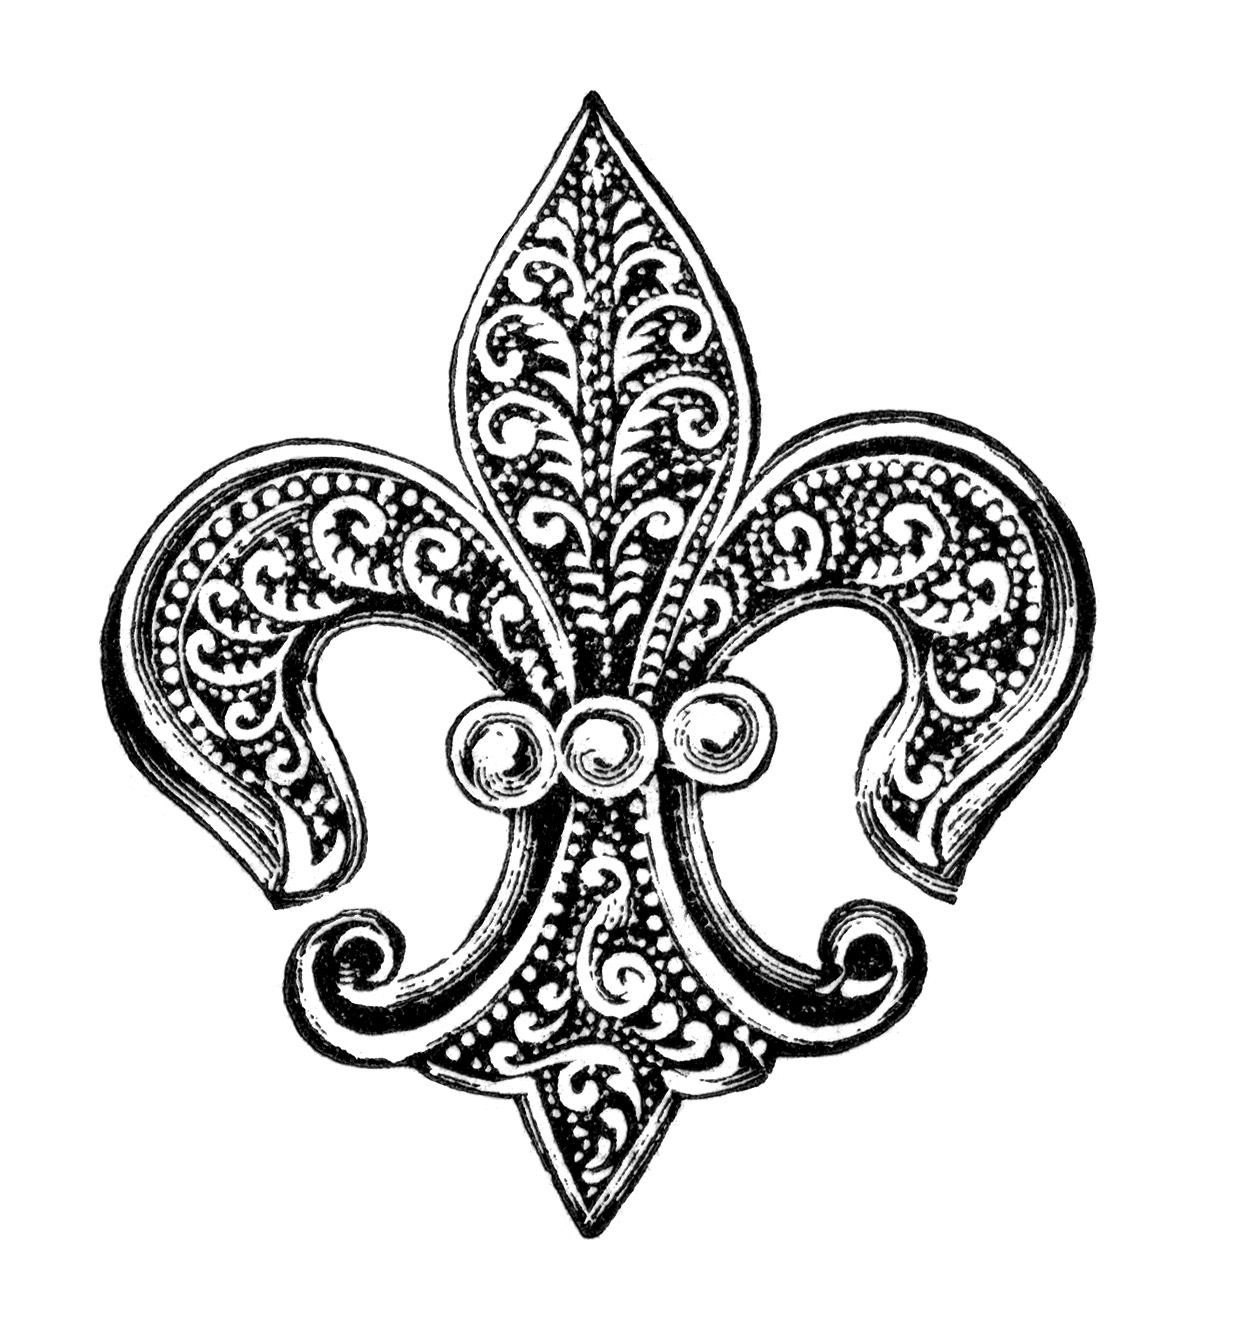 fleur de lis art google search art pinterest. Black Bedroom Furniture Sets. Home Design Ideas